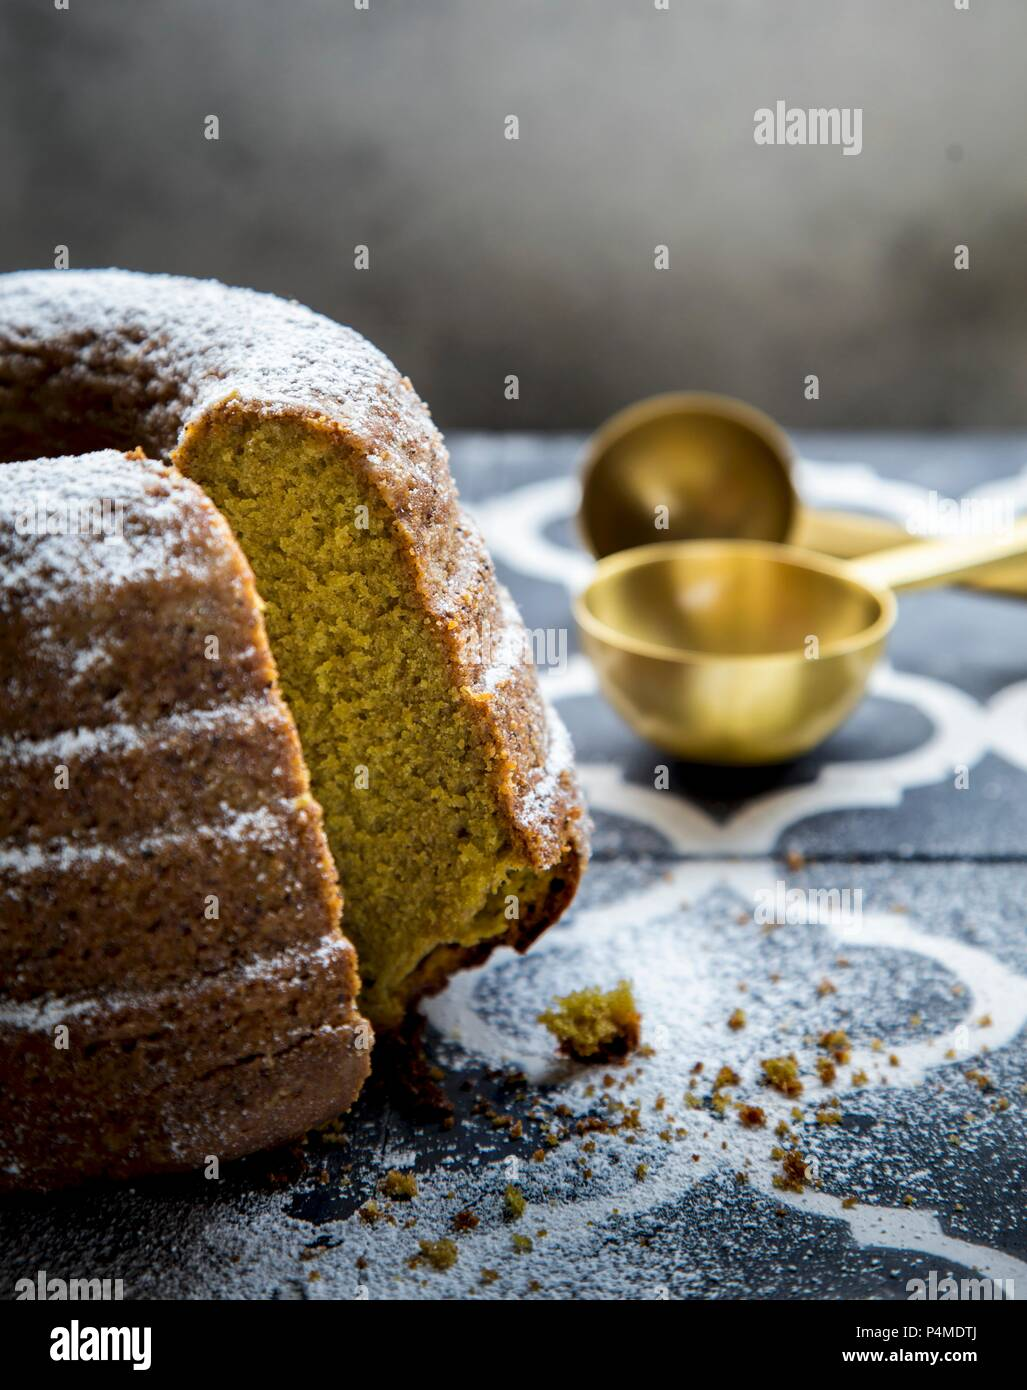 Matcha gugelhupf with icing sugar, cut into pieces - Stock Image